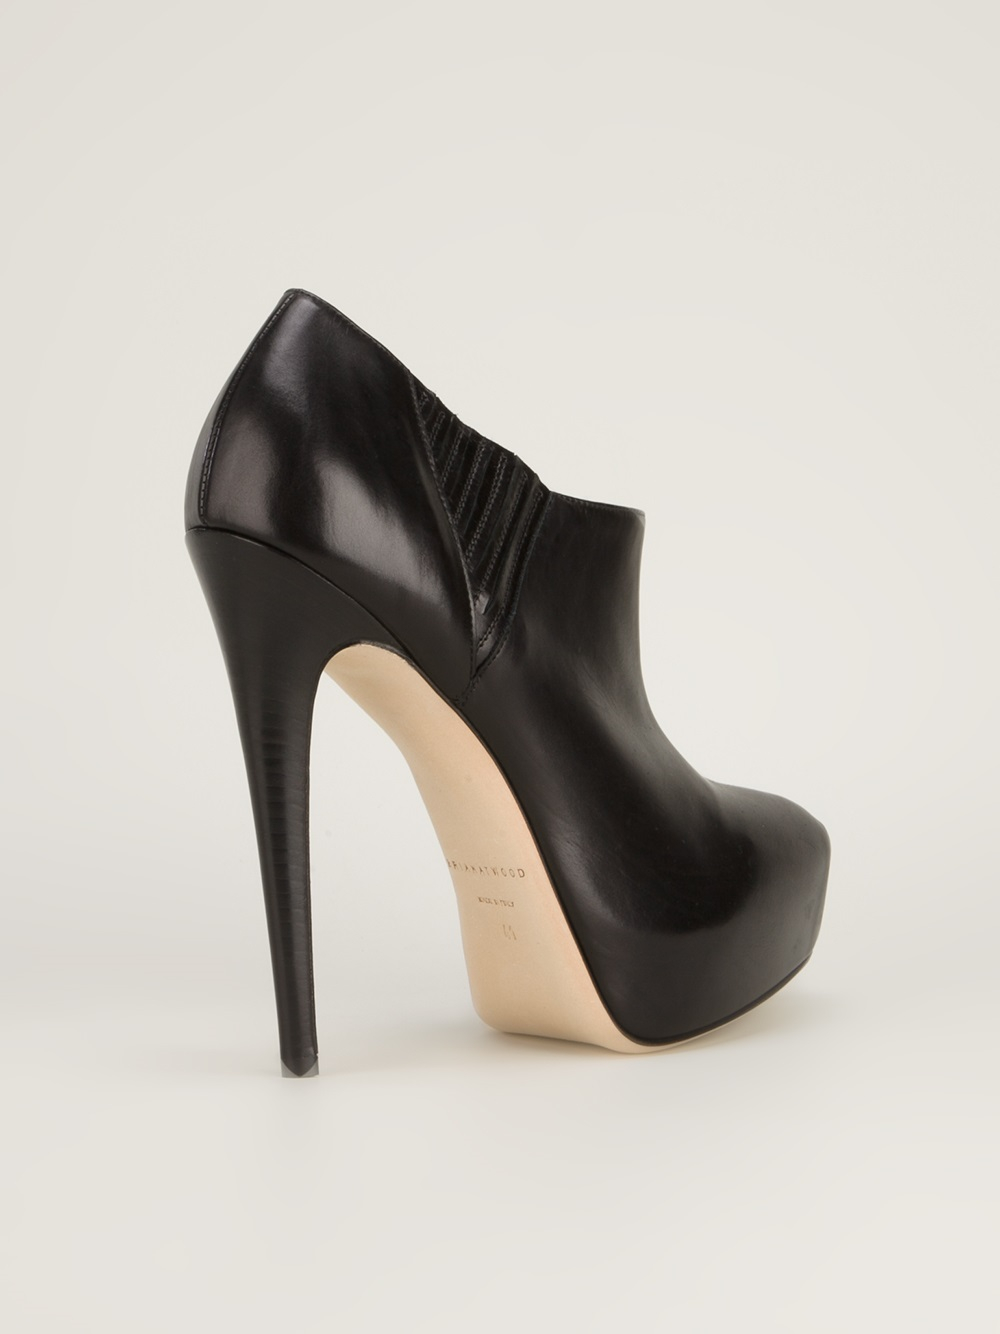 Brian Atwood 'Nolita' Ankle Boot in Black